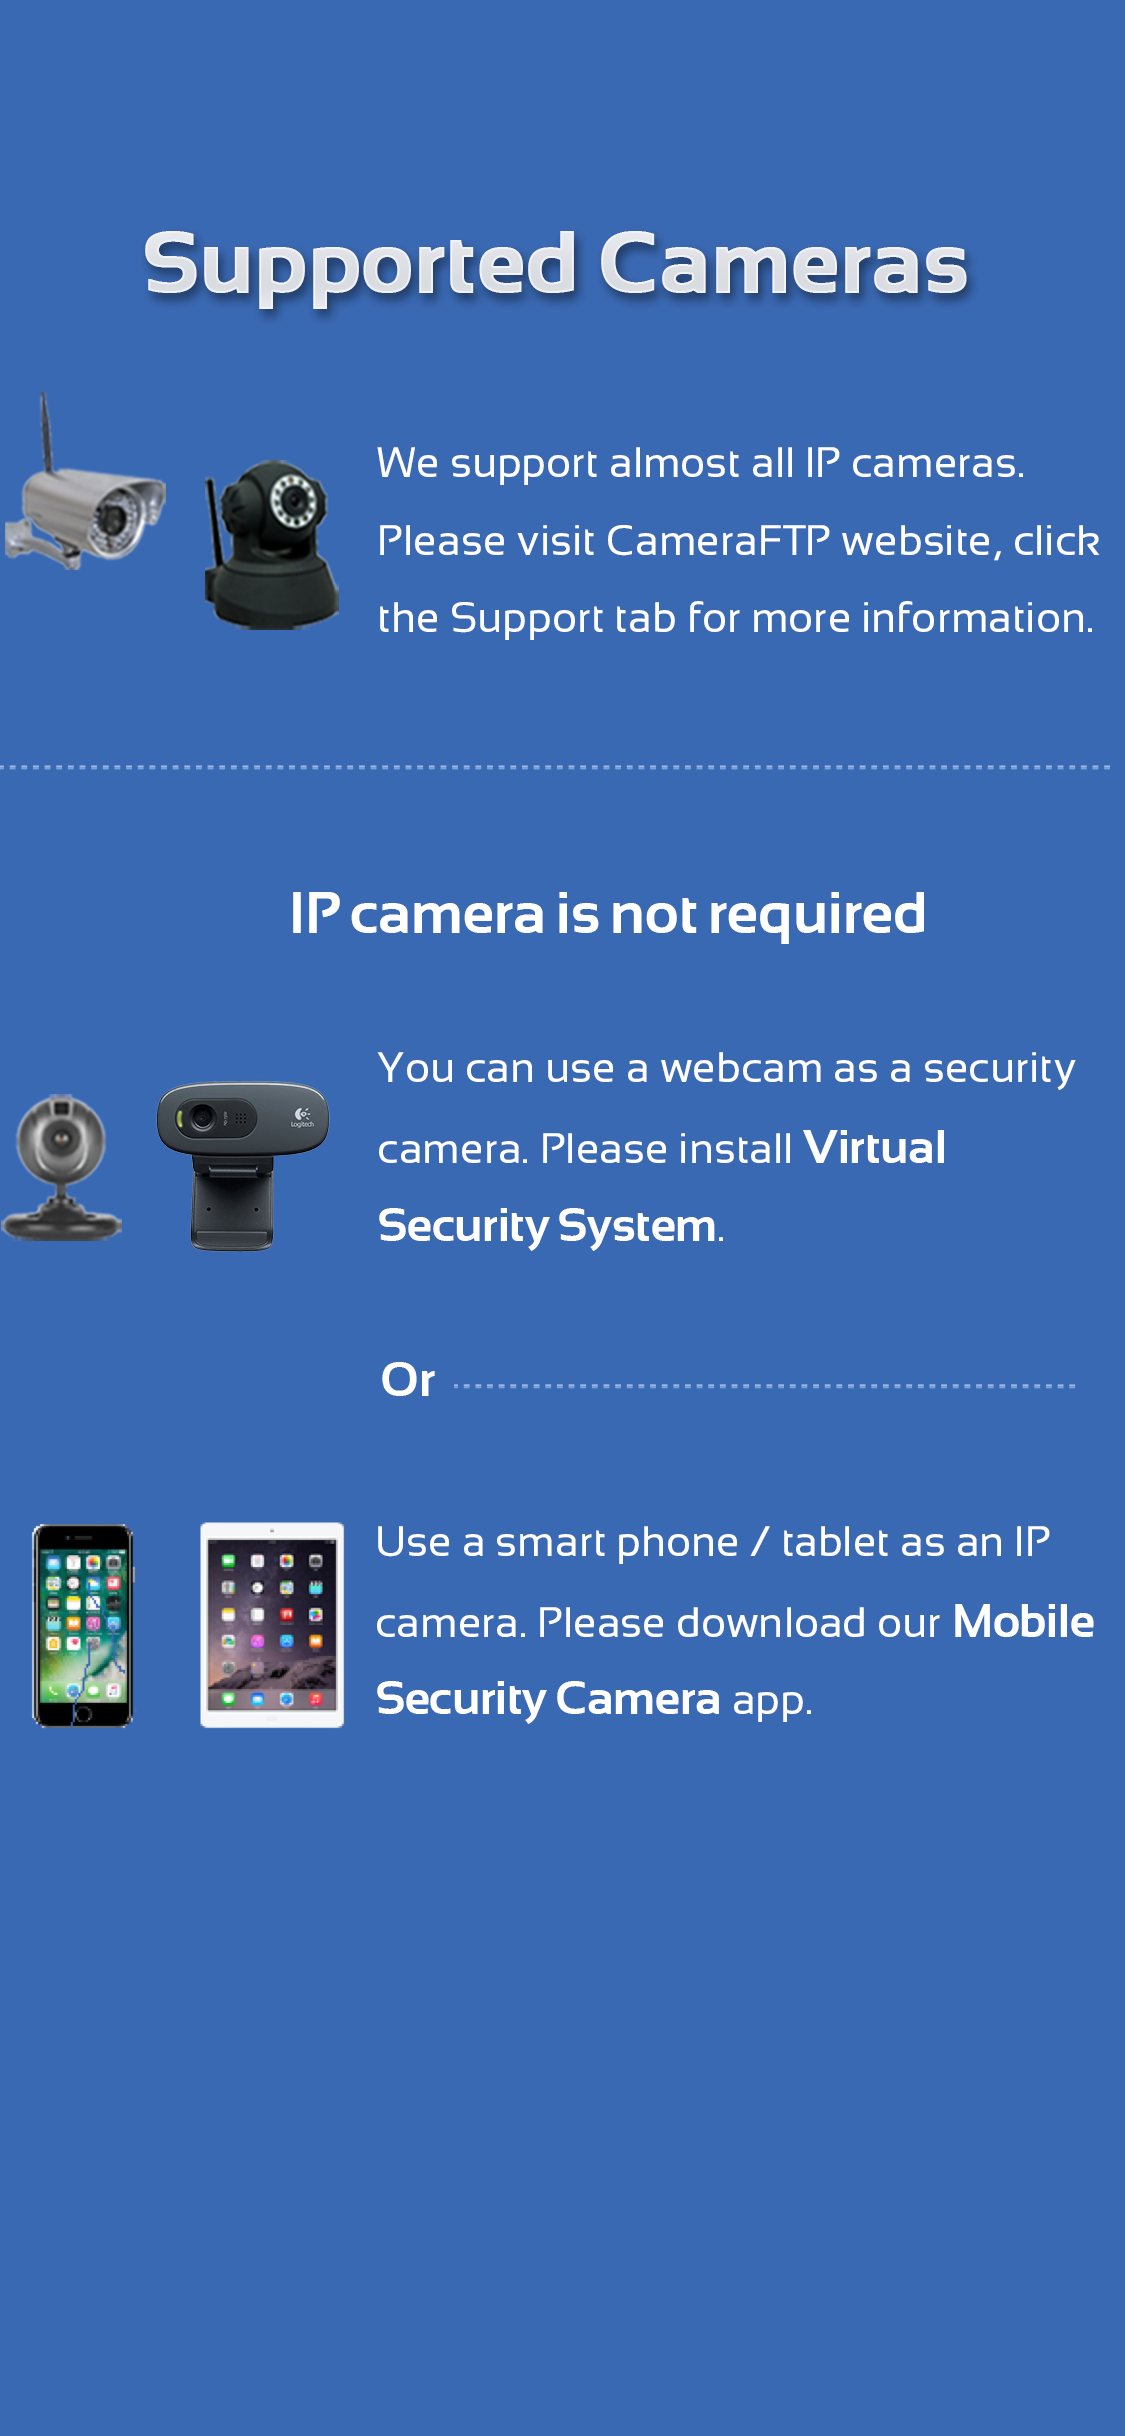 Mobile CameraFTP Viewer APP for iOS - View or play back